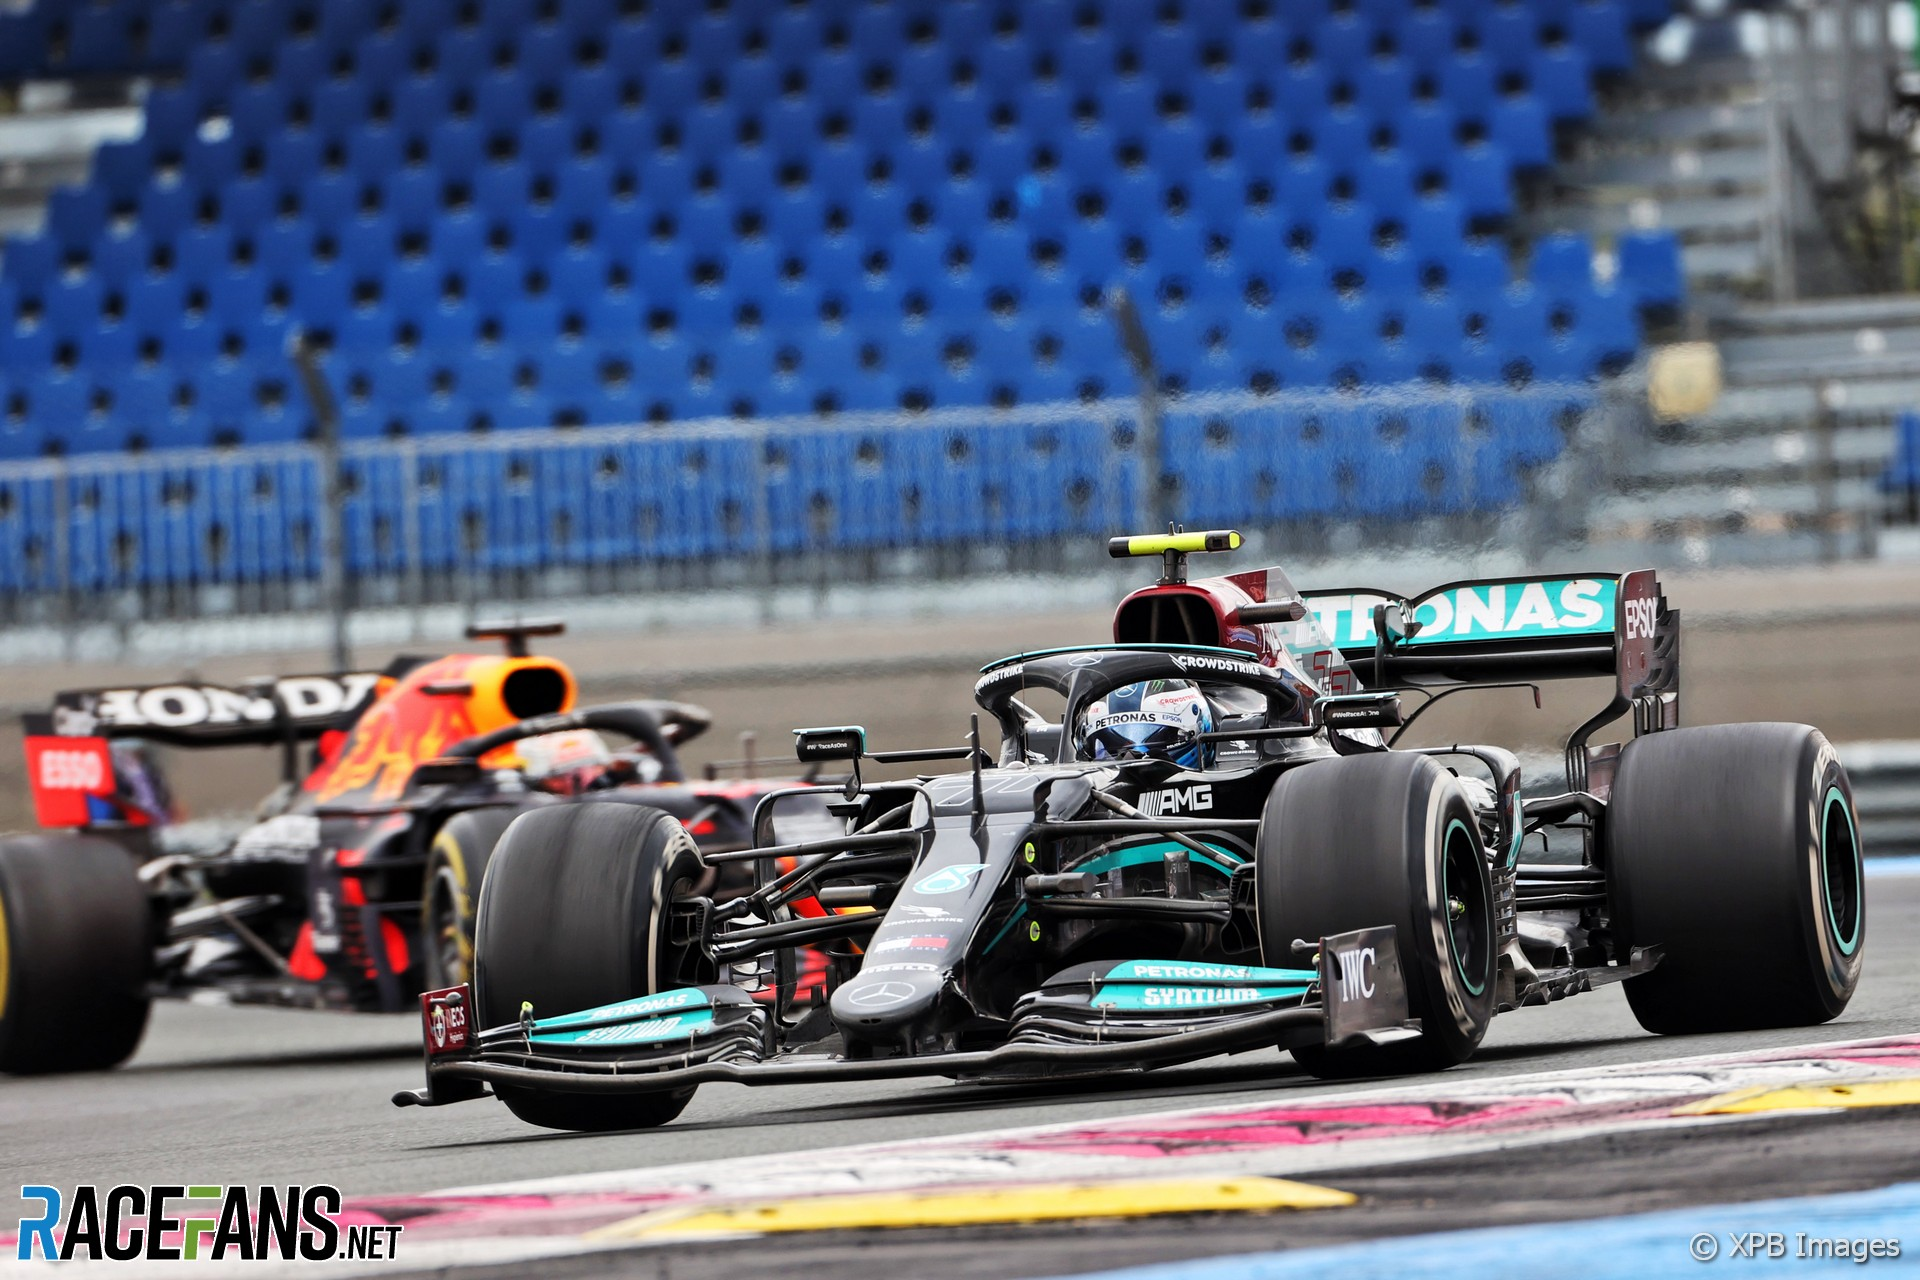 Wolff encouraged by 'real progress' from Bottas in French GP · RaceFans